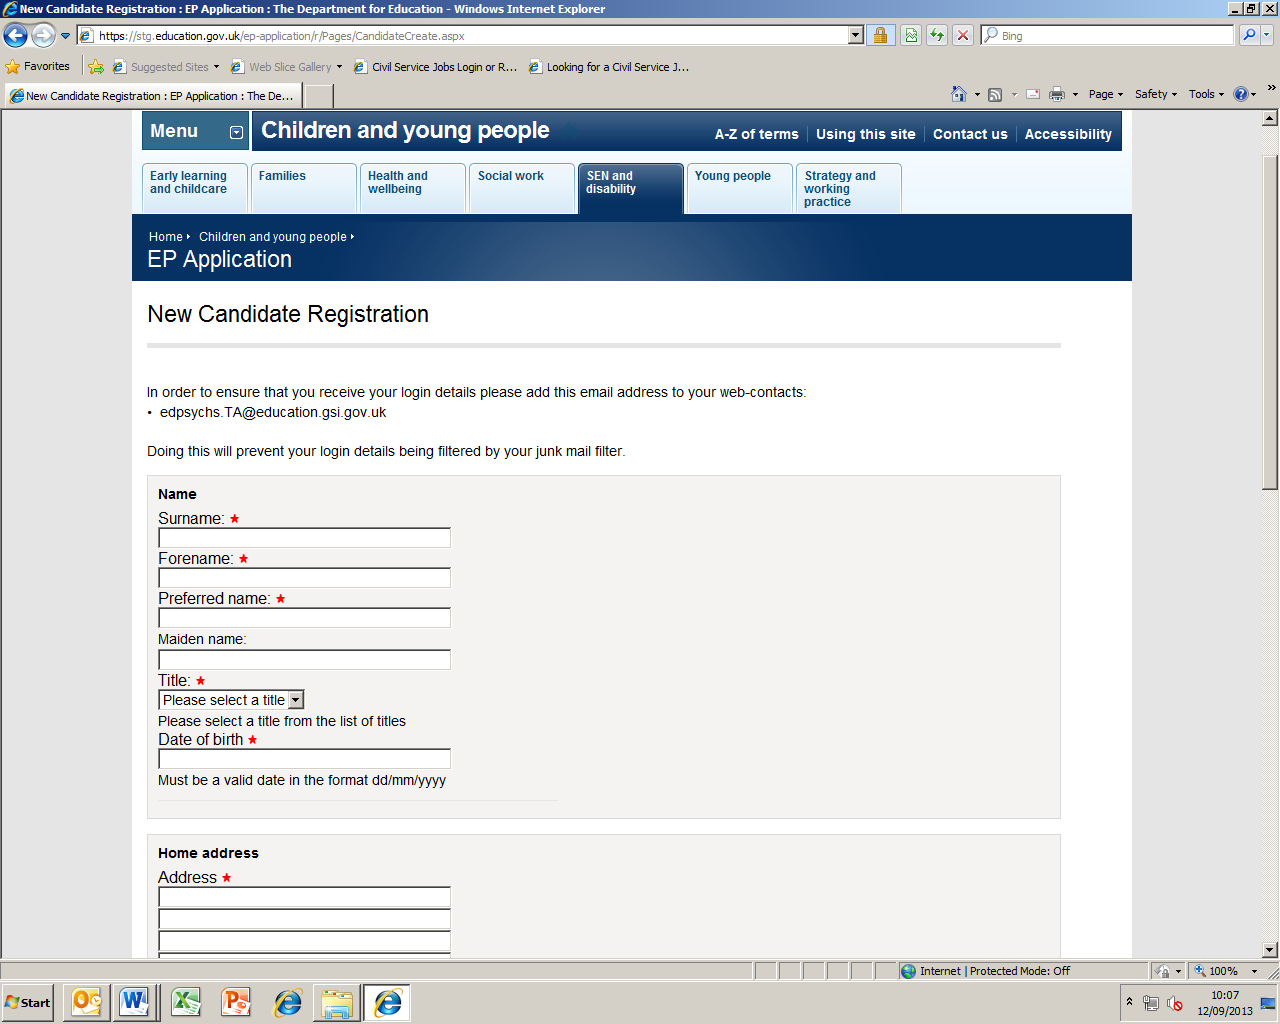 New Candidate Registration You will arrive at this page when you click New Candidate Registration. All fields marked with * are mandatory.